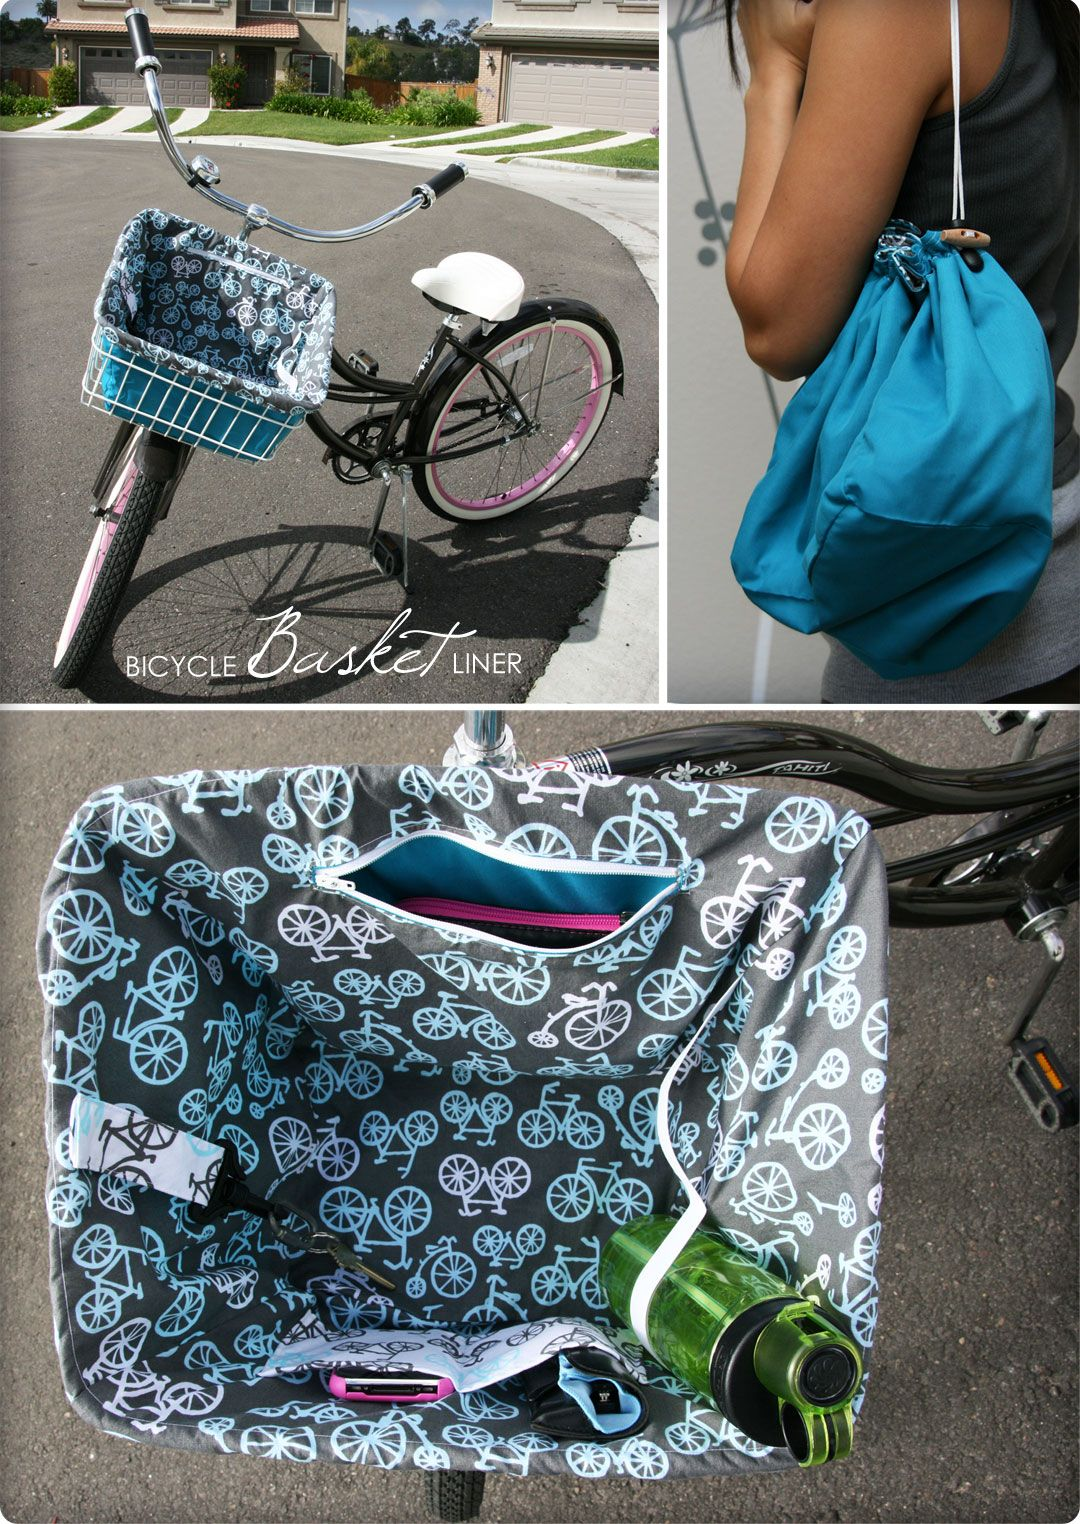 New Beach Cruiser Bicycle Basket Liner Converts to Shoulder Pack